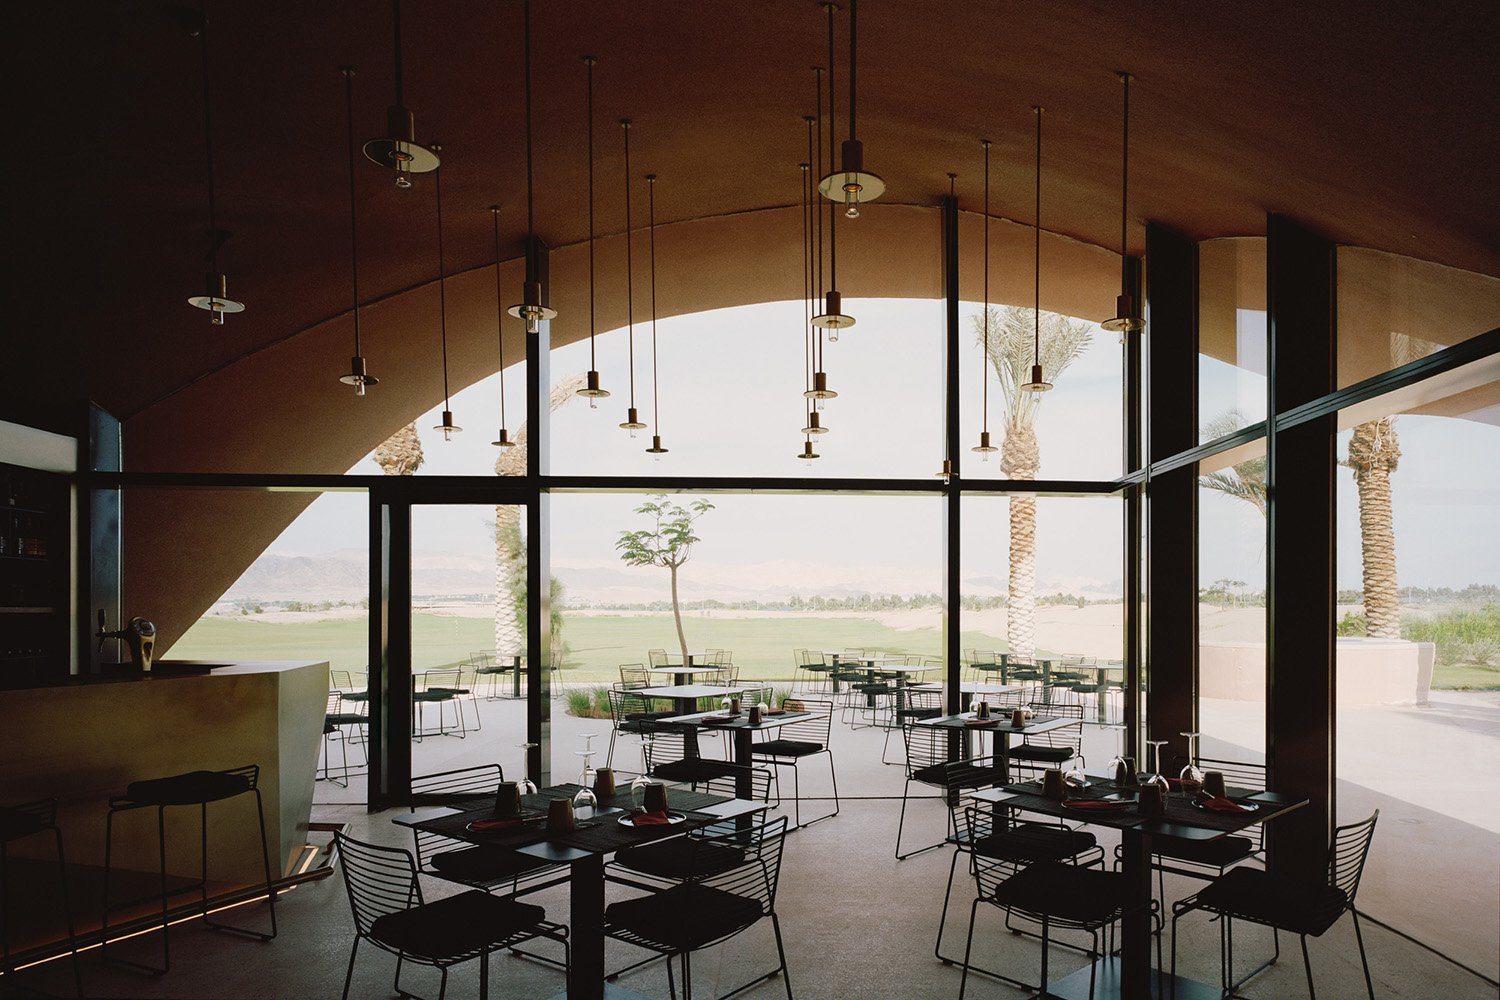 Internal view of golfclub cafe area Rory Gardiner